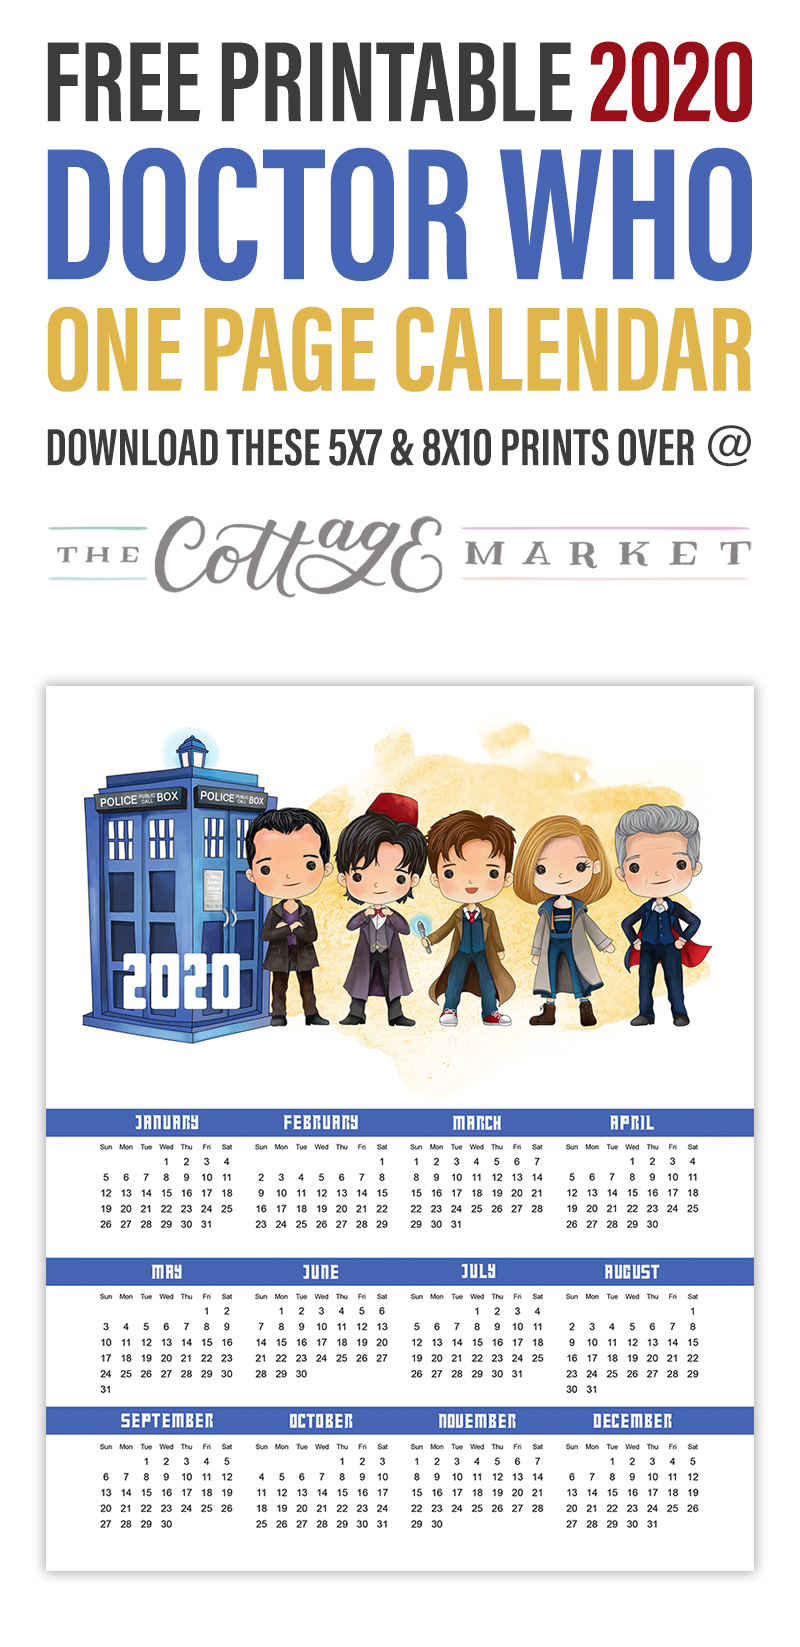 This Free Printable 2020 Doctor Who Calendar is just what you need to keep your organized and on time this coming year!  Come on over and print one of your very own!